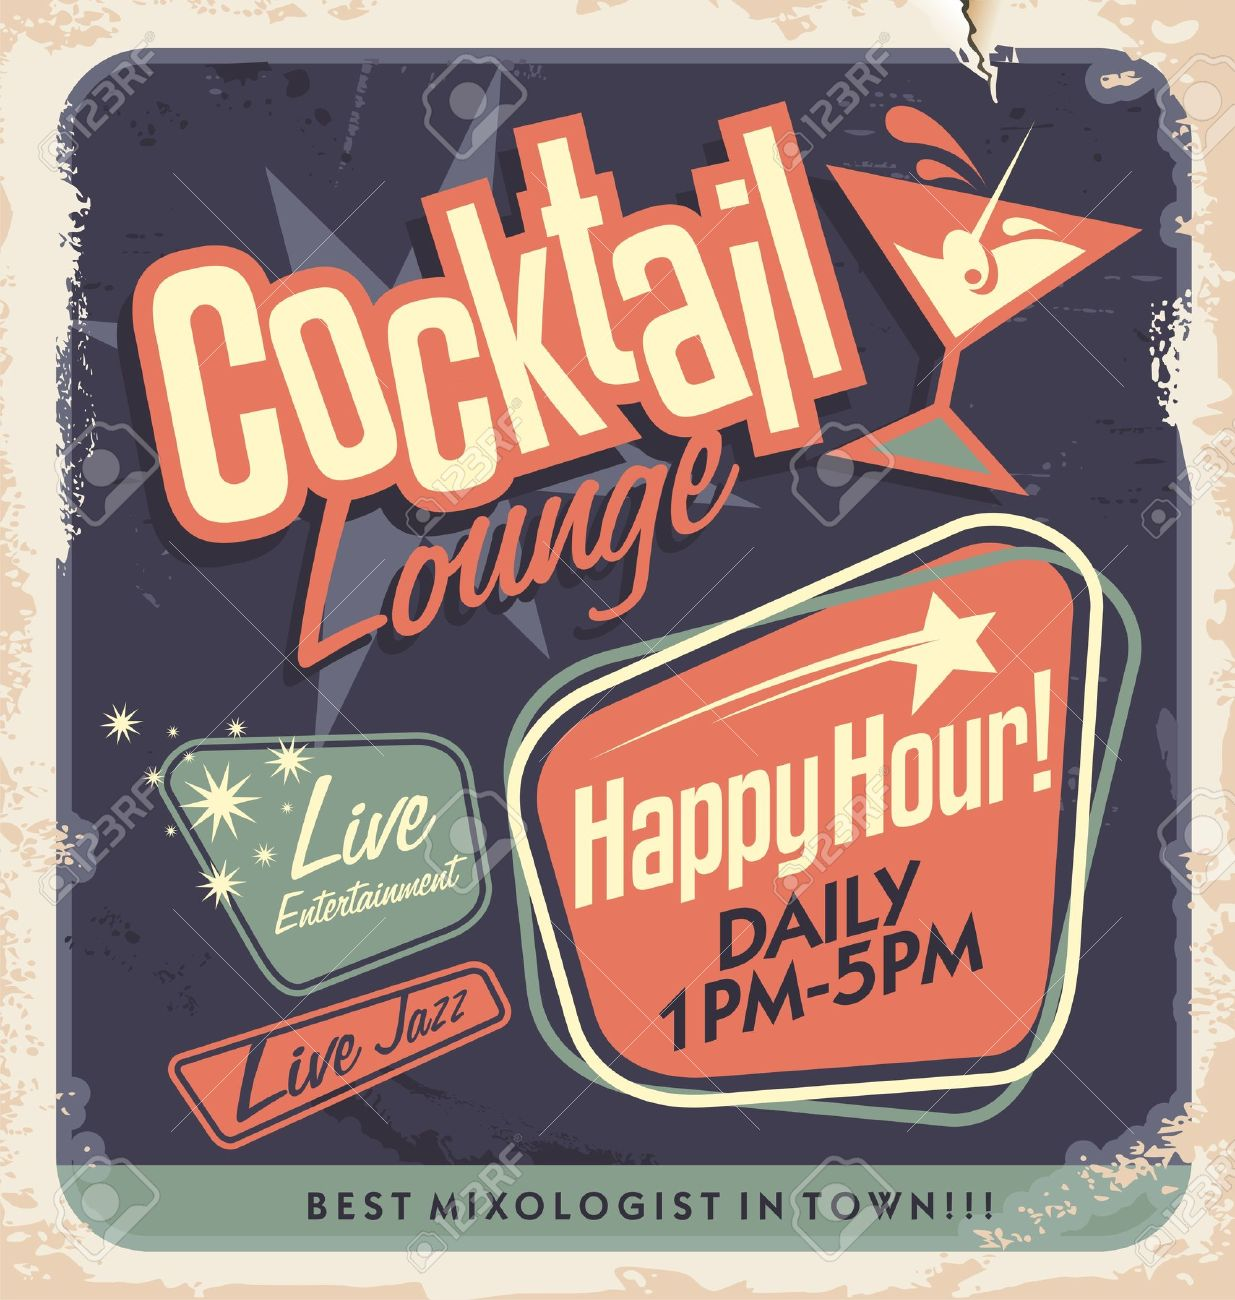 Vintage Cocktail Party Clipart